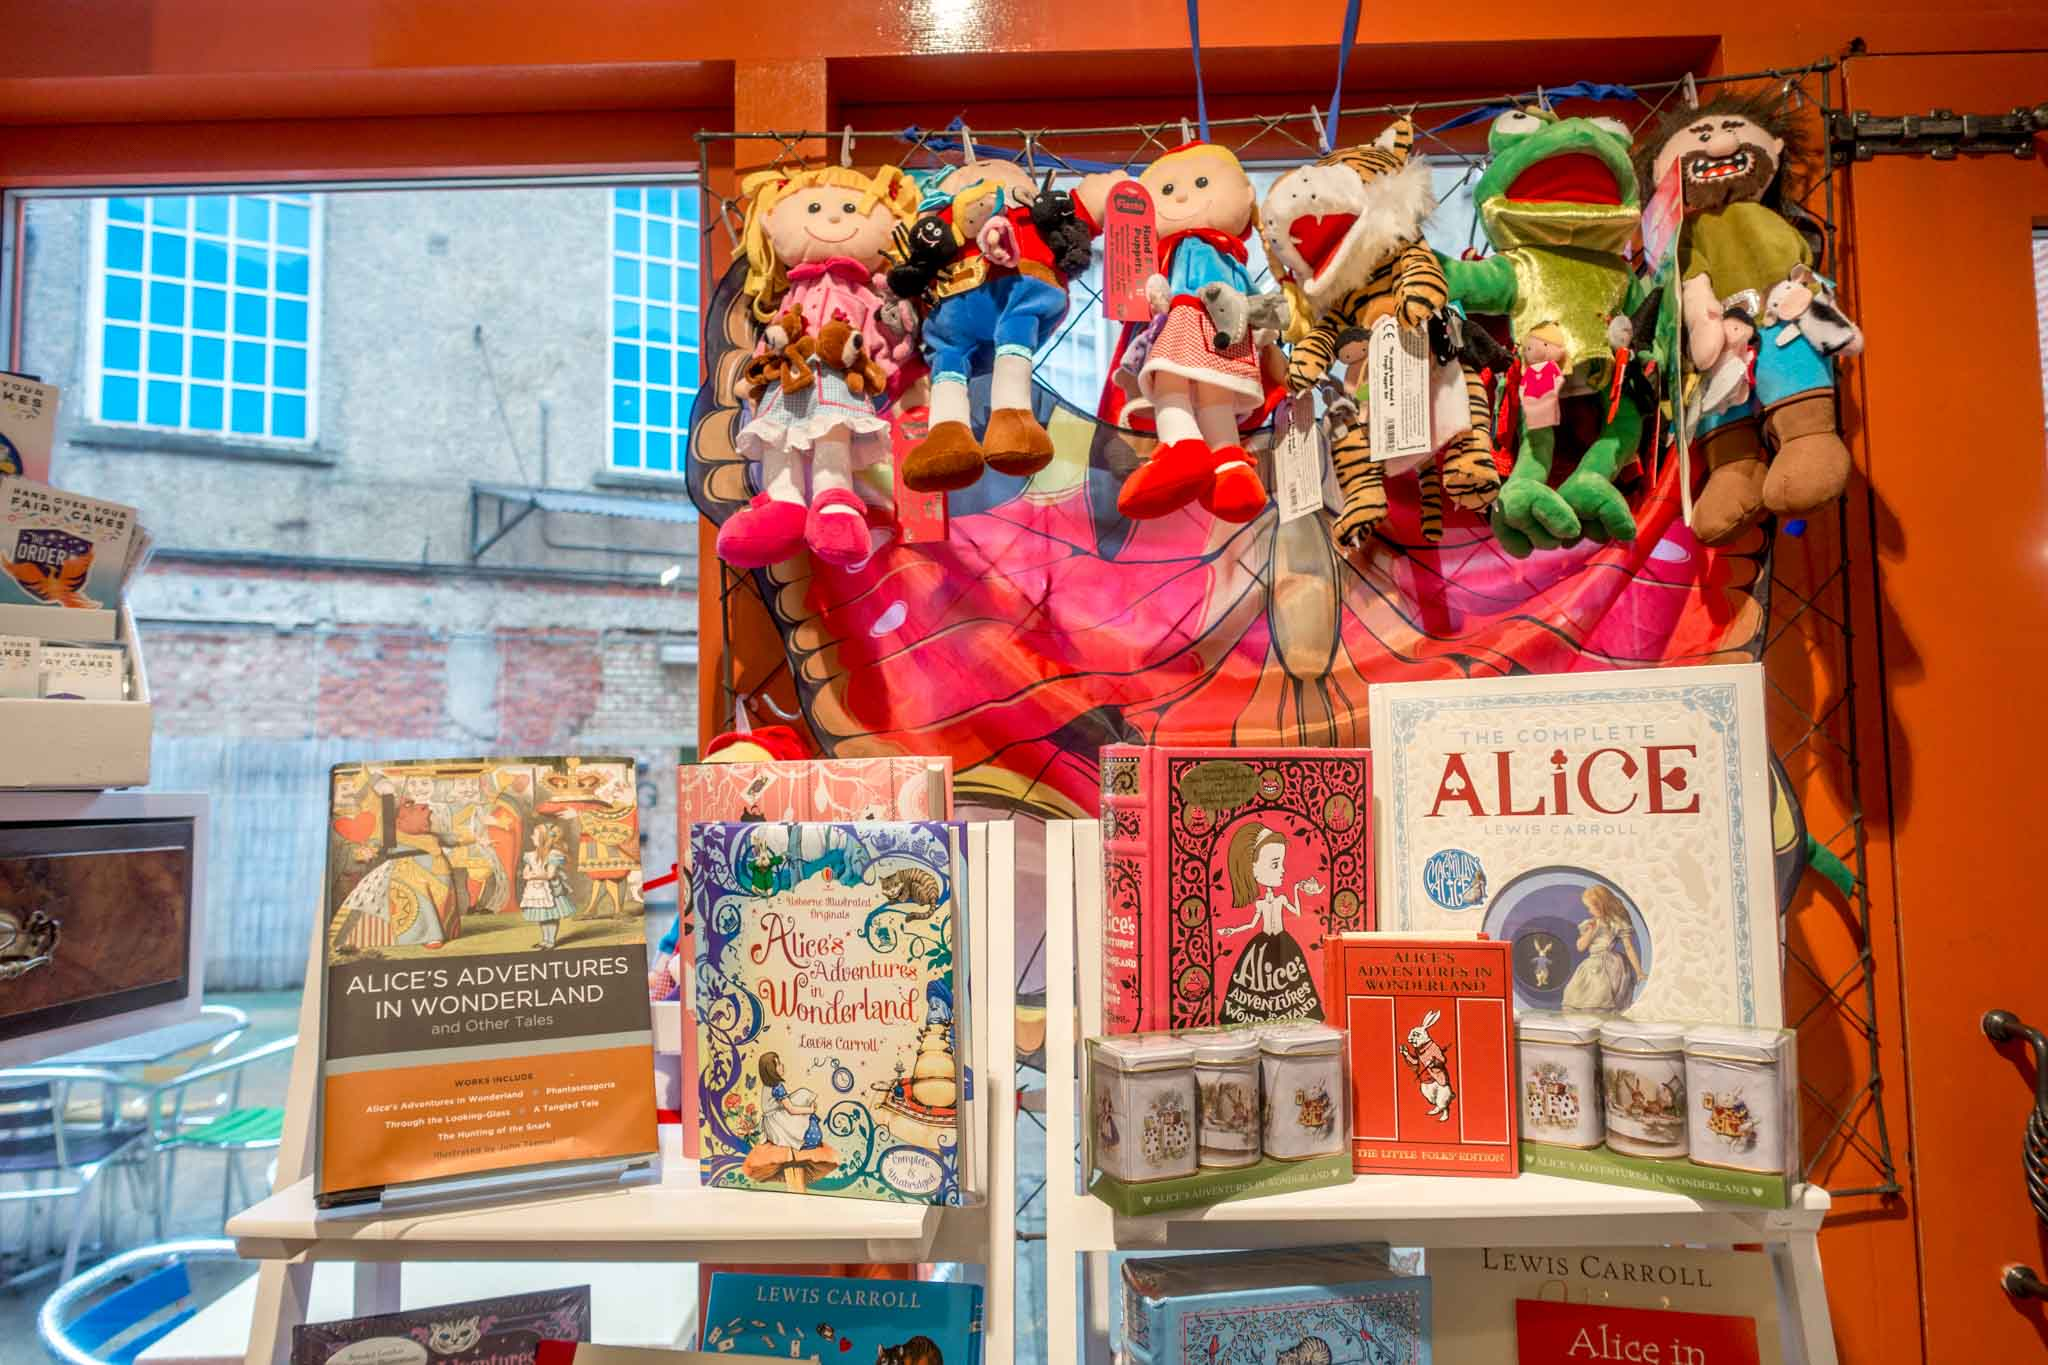 Alice in Wonderland items at The Story Museum cafe, which is a great place to visit on an Oxford day trip